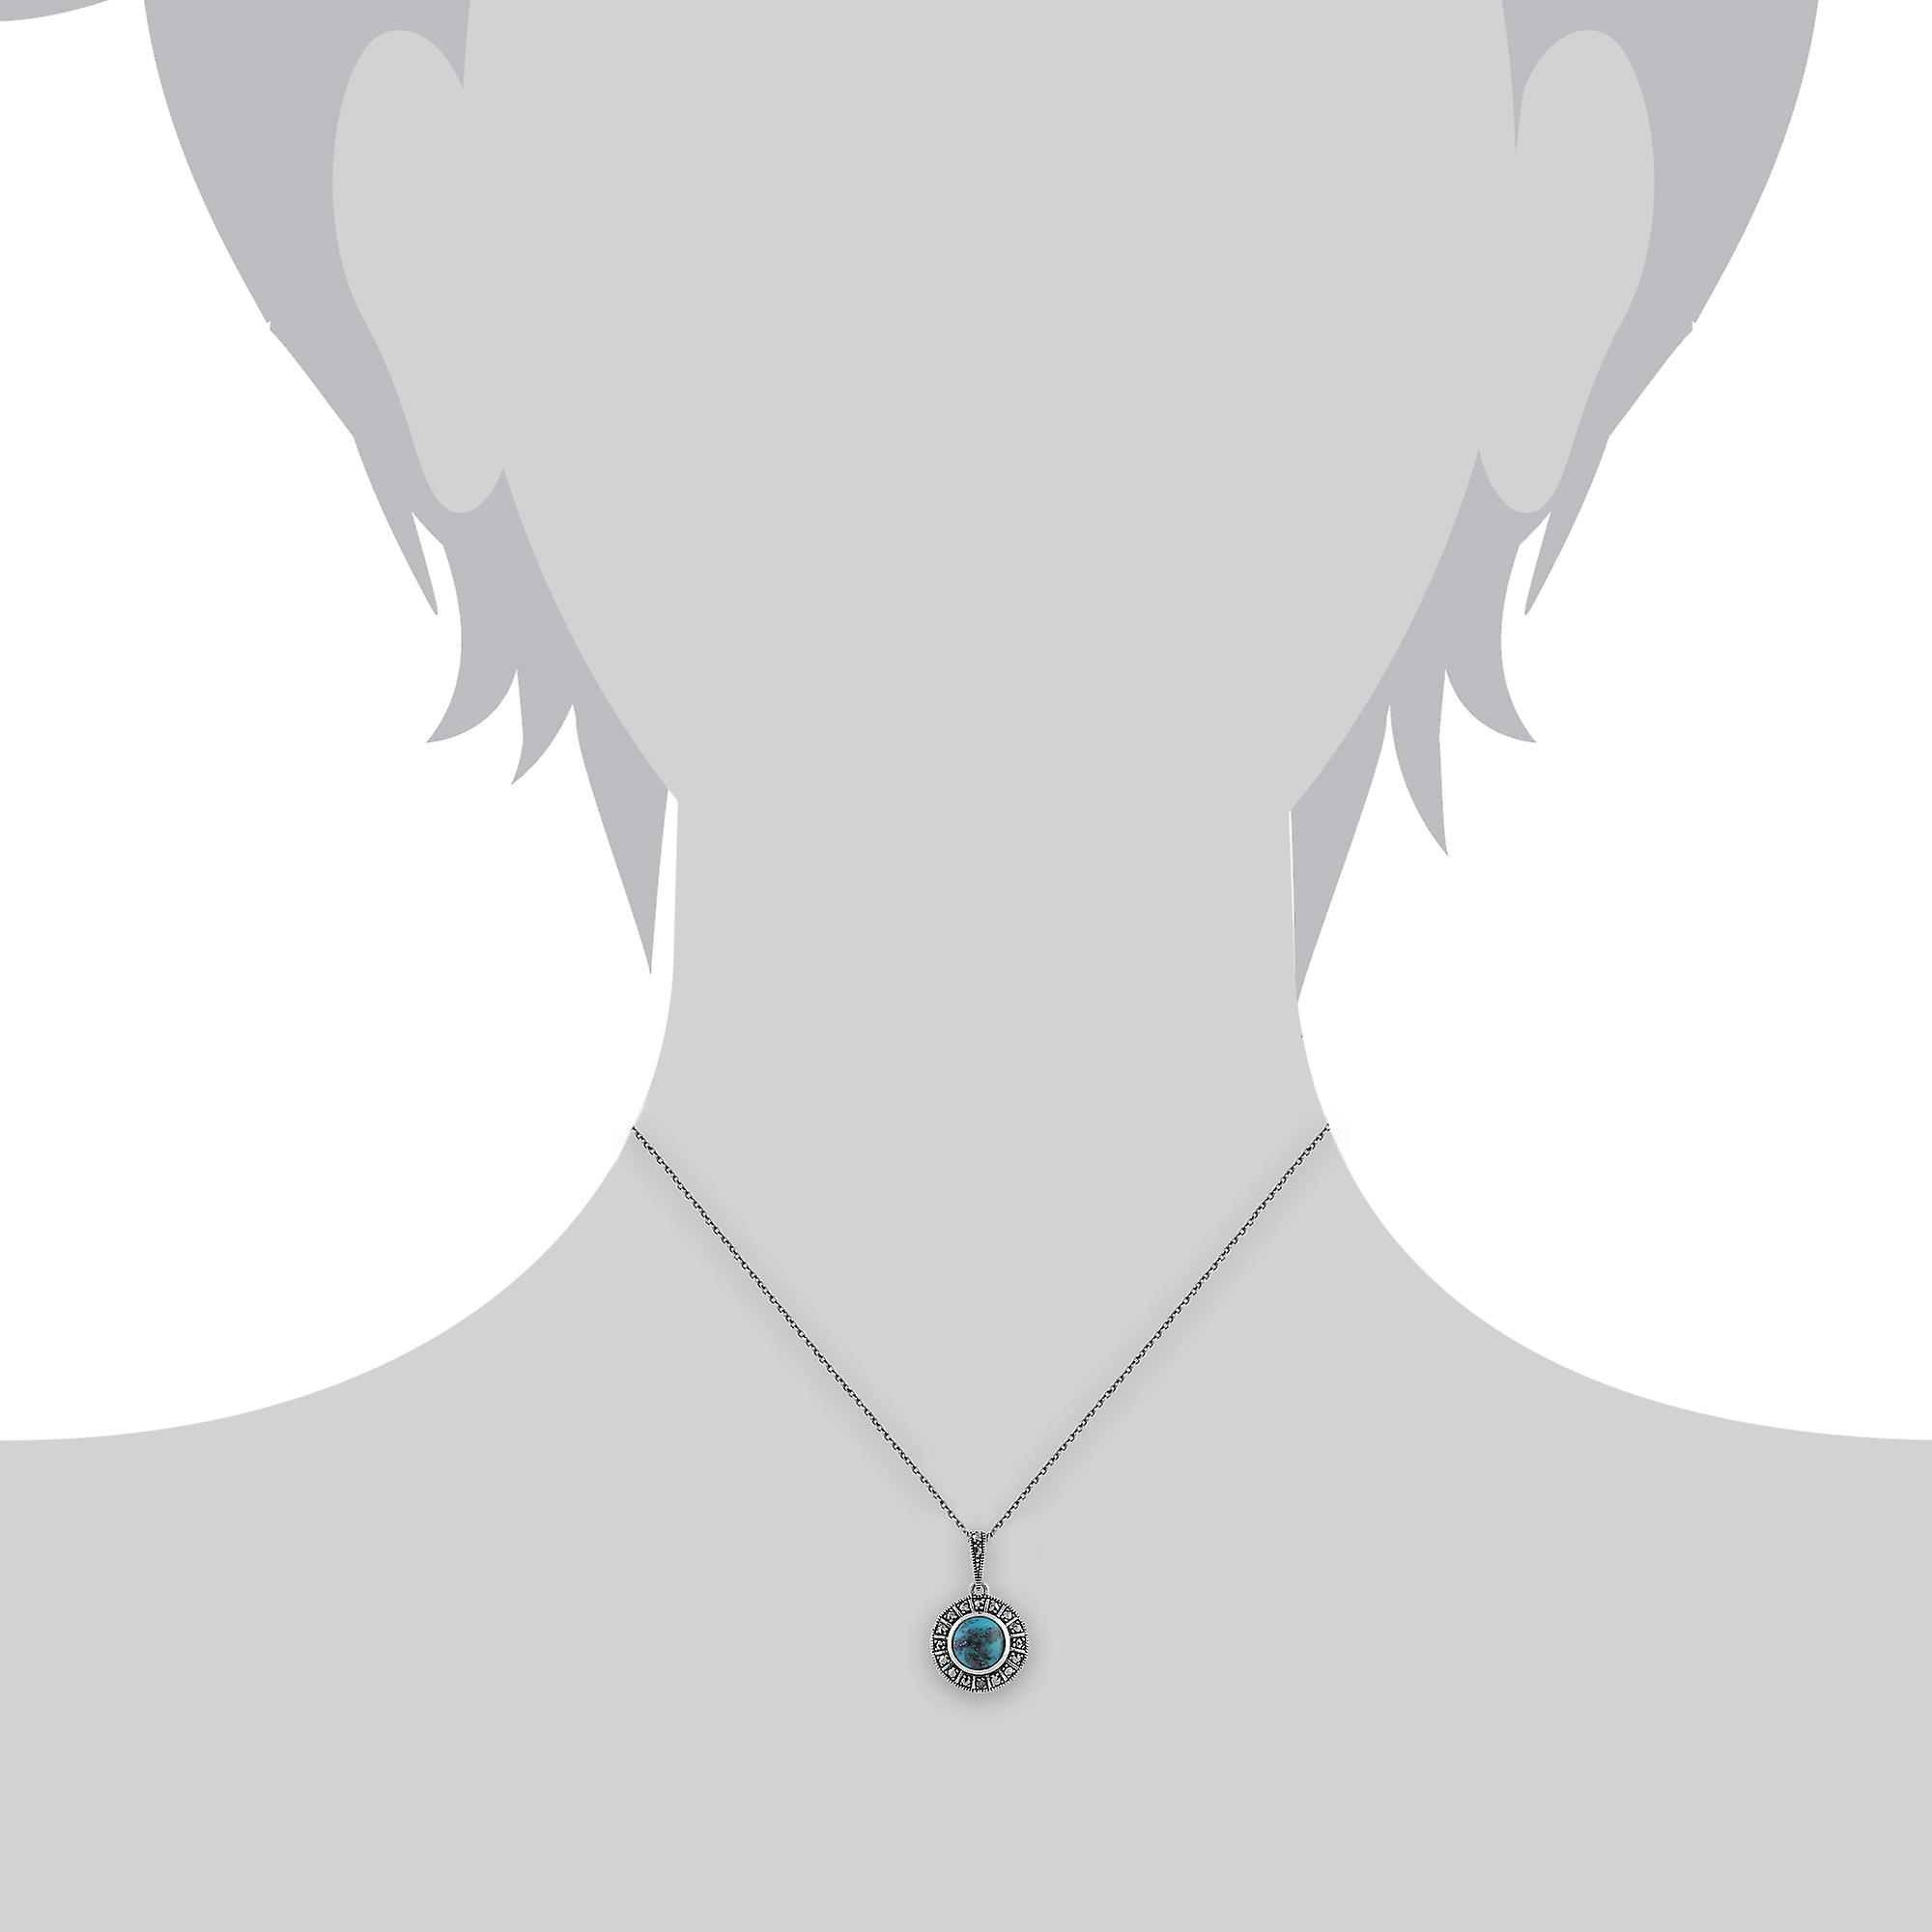 Gemondo 925 Sterling Silver 0.97ct Turquoise & Marcasite Art Deco Necklace